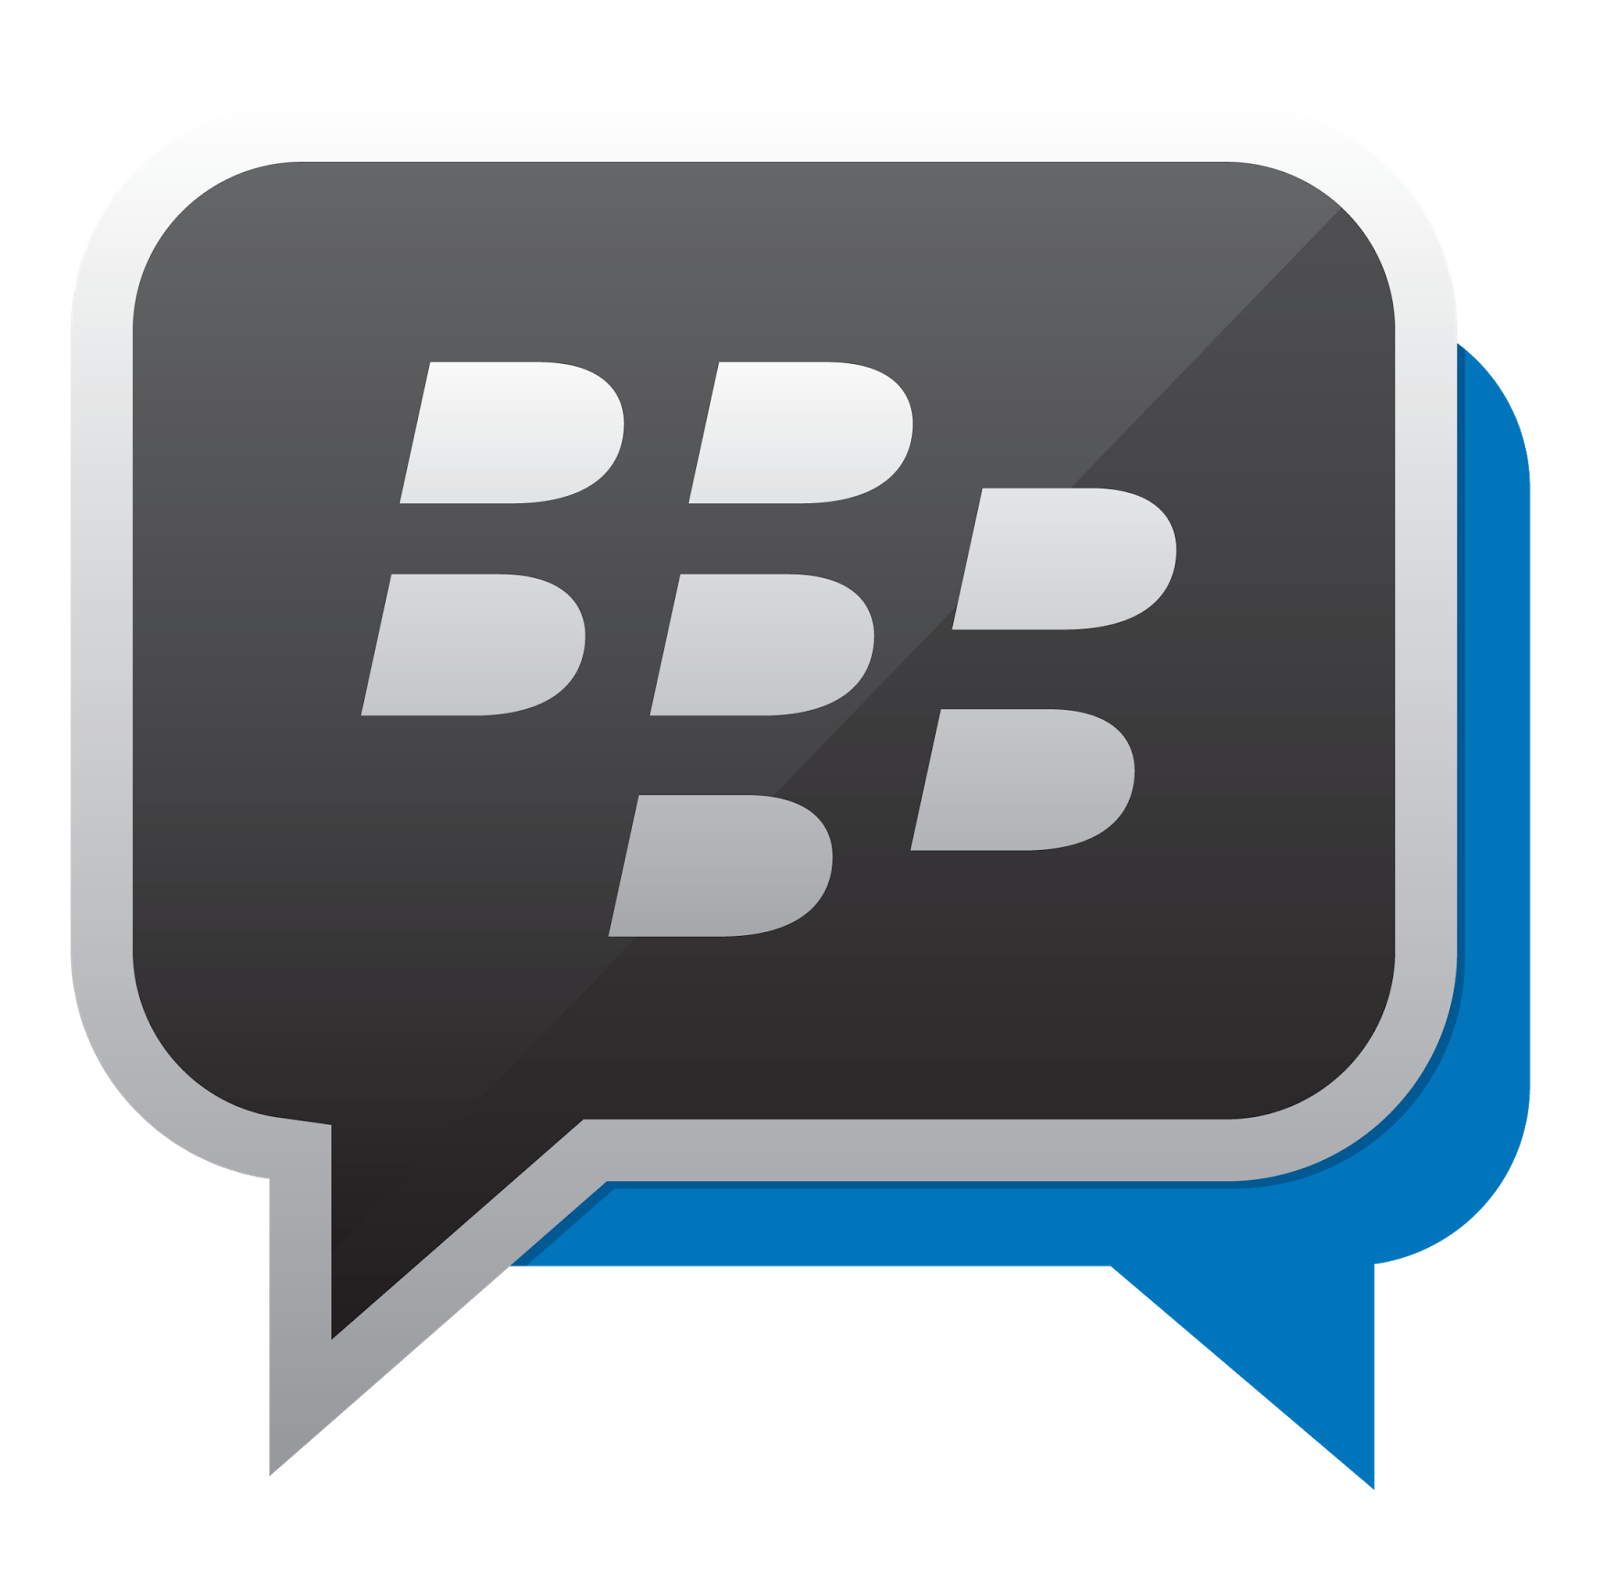 Bbm Instant Messenger) Ios Messenger Blackberry Logo PNG Image